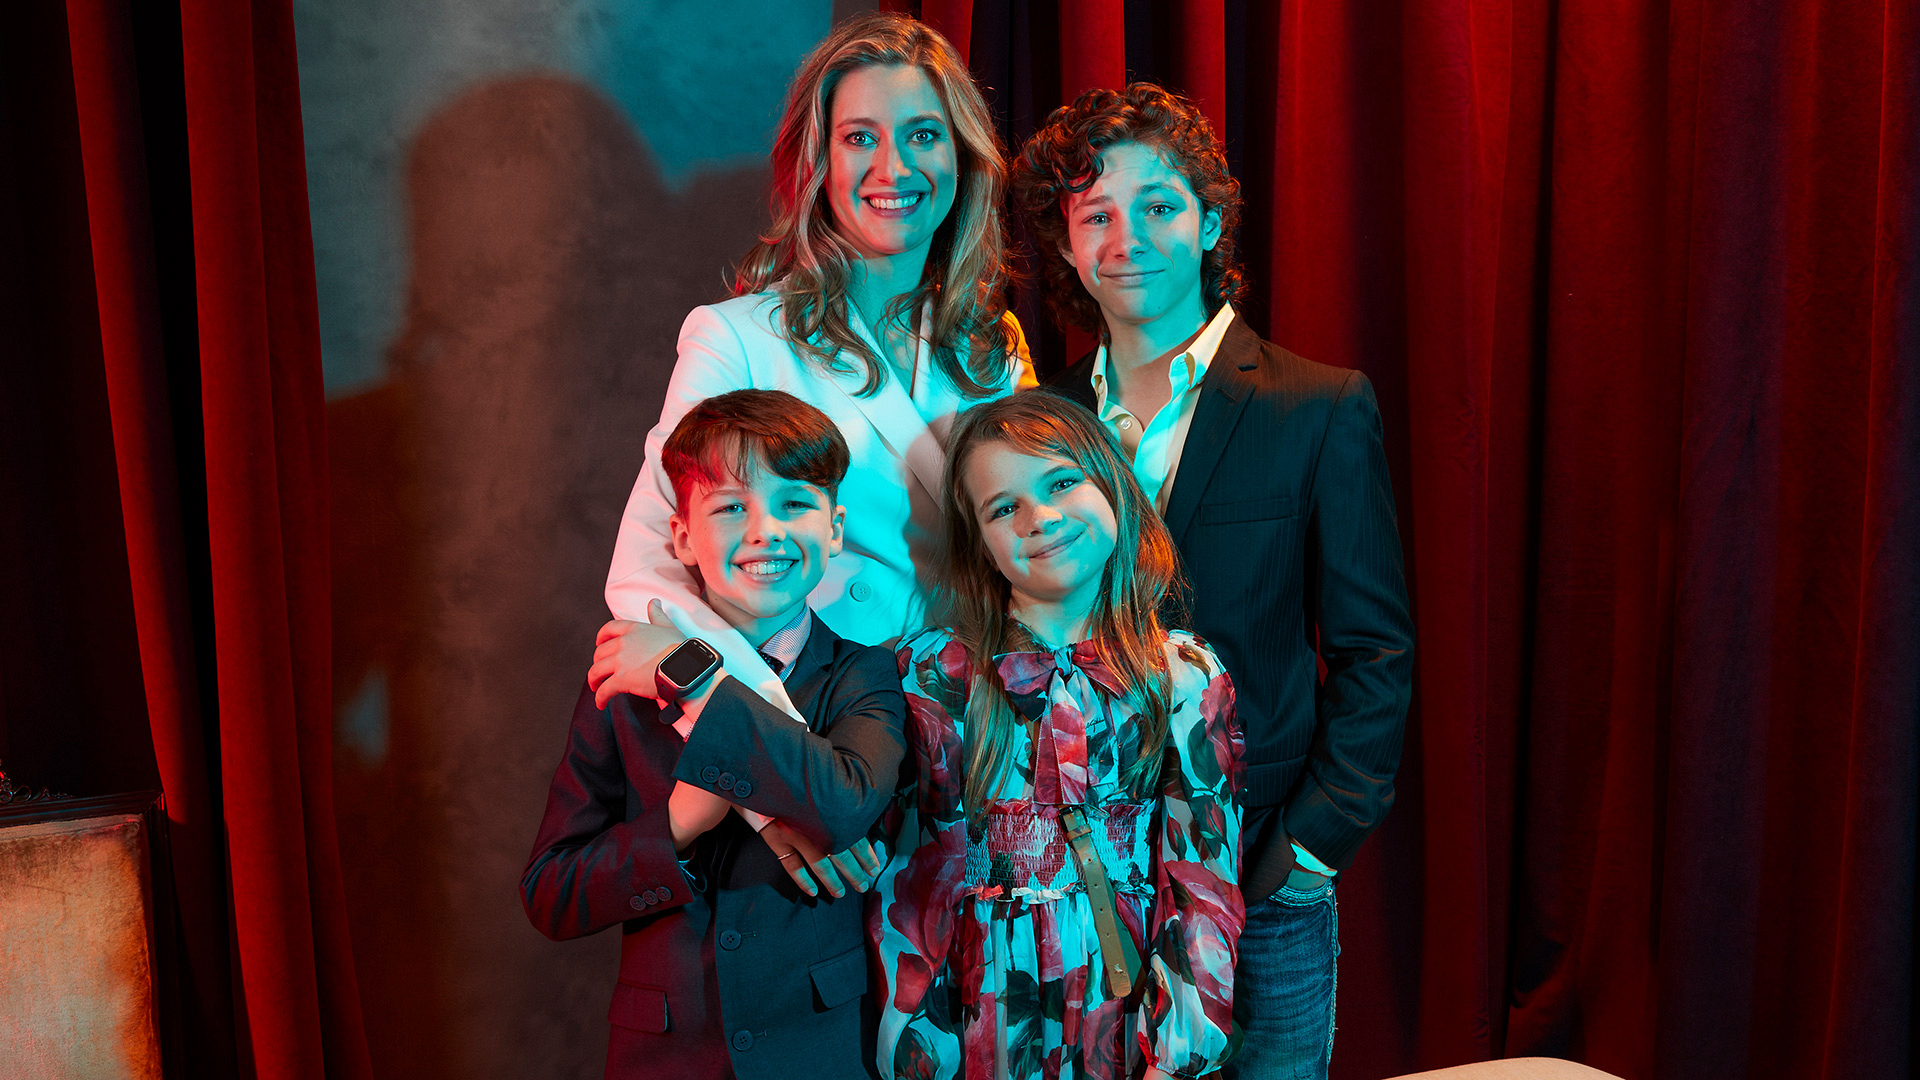 The cast of Young Sheldon couldn't be any cuter in these exclusive photos.